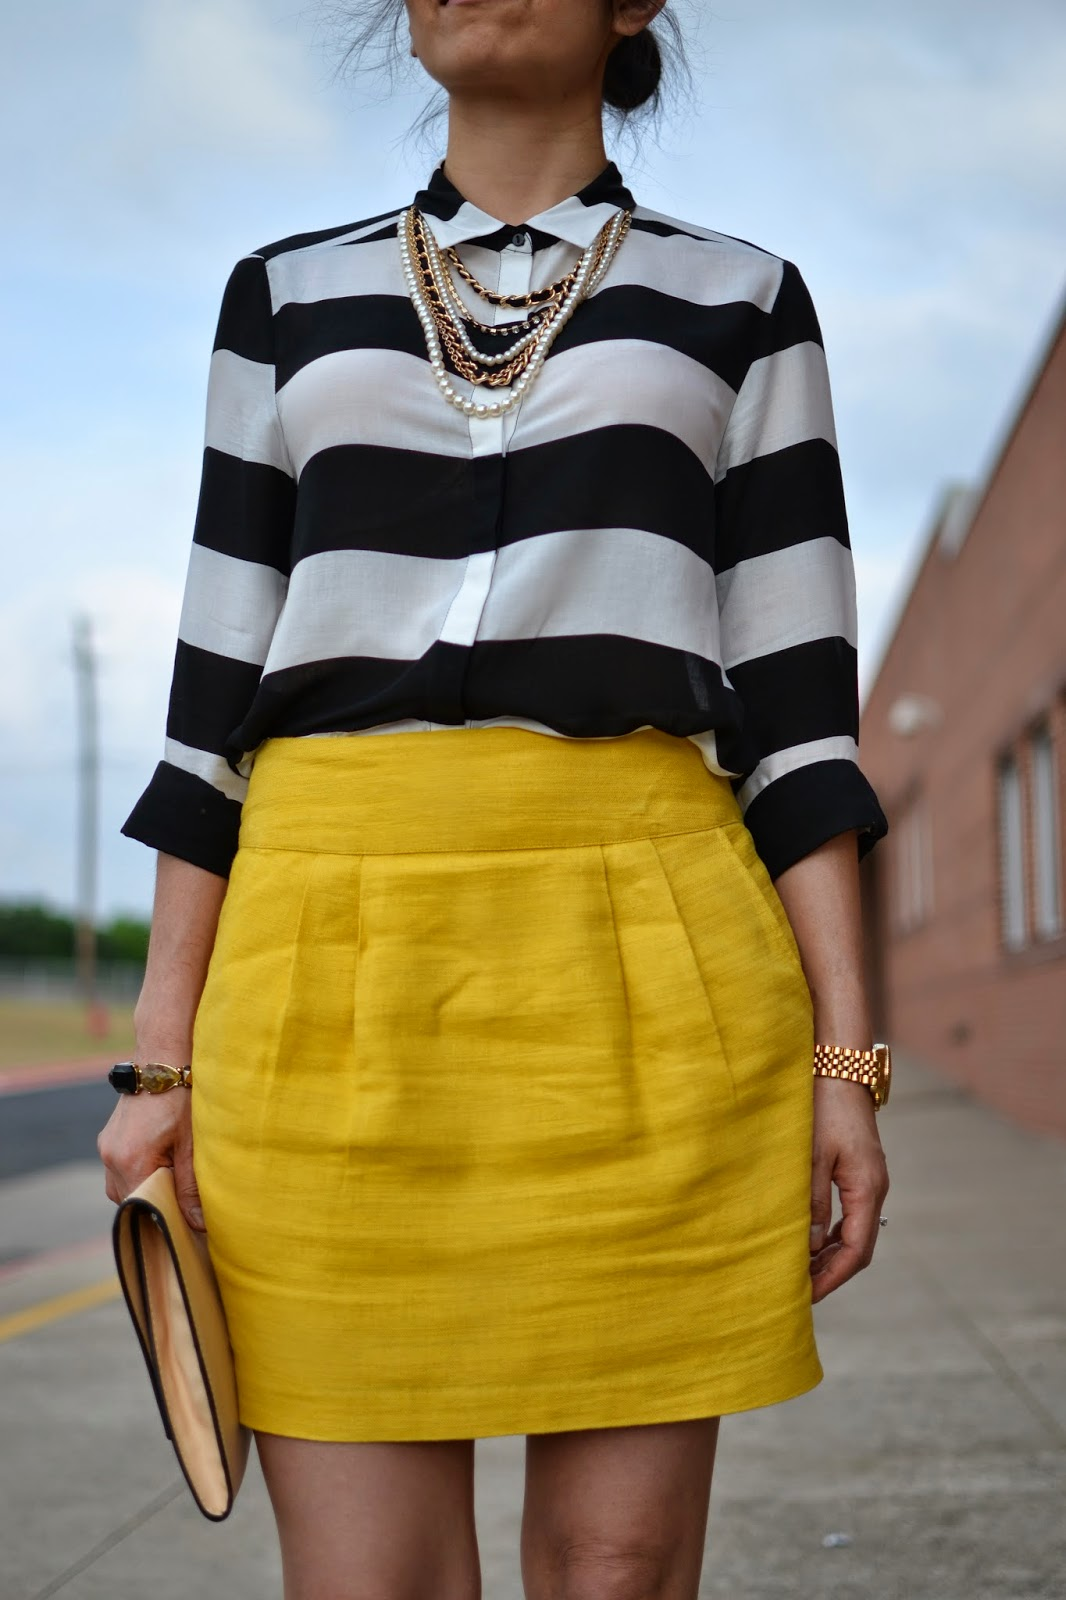 Style and Cappuccino : Bumble bee: Black & White Striped Blouse   ...